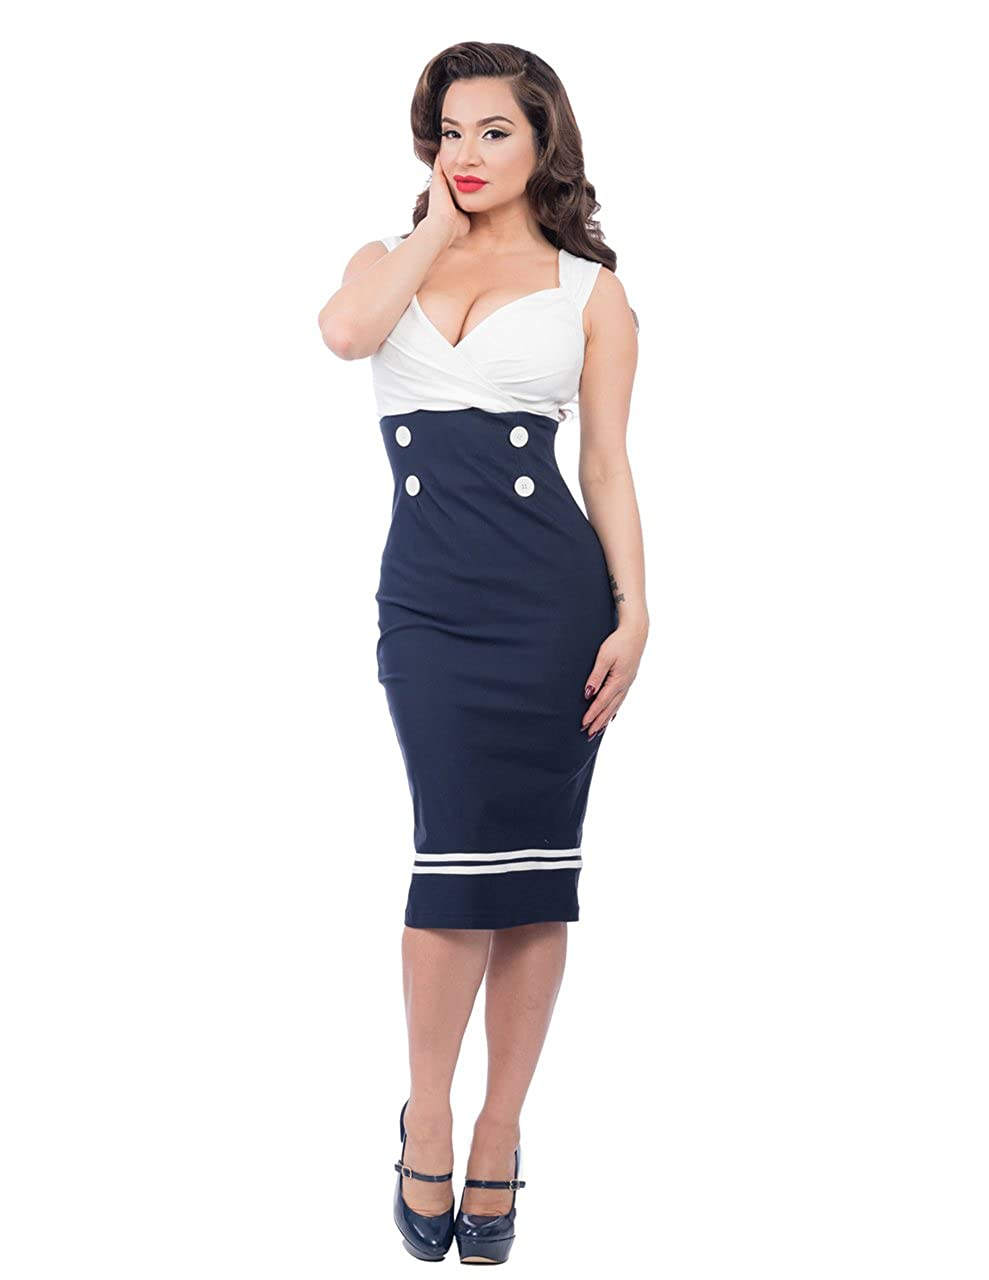 1940s Costumes- WW2, Nurse, Pinup, Rosie the Riveter Steady Clothing Womens Set Sail Diva Dress $48.95 AT vintagedancer.com